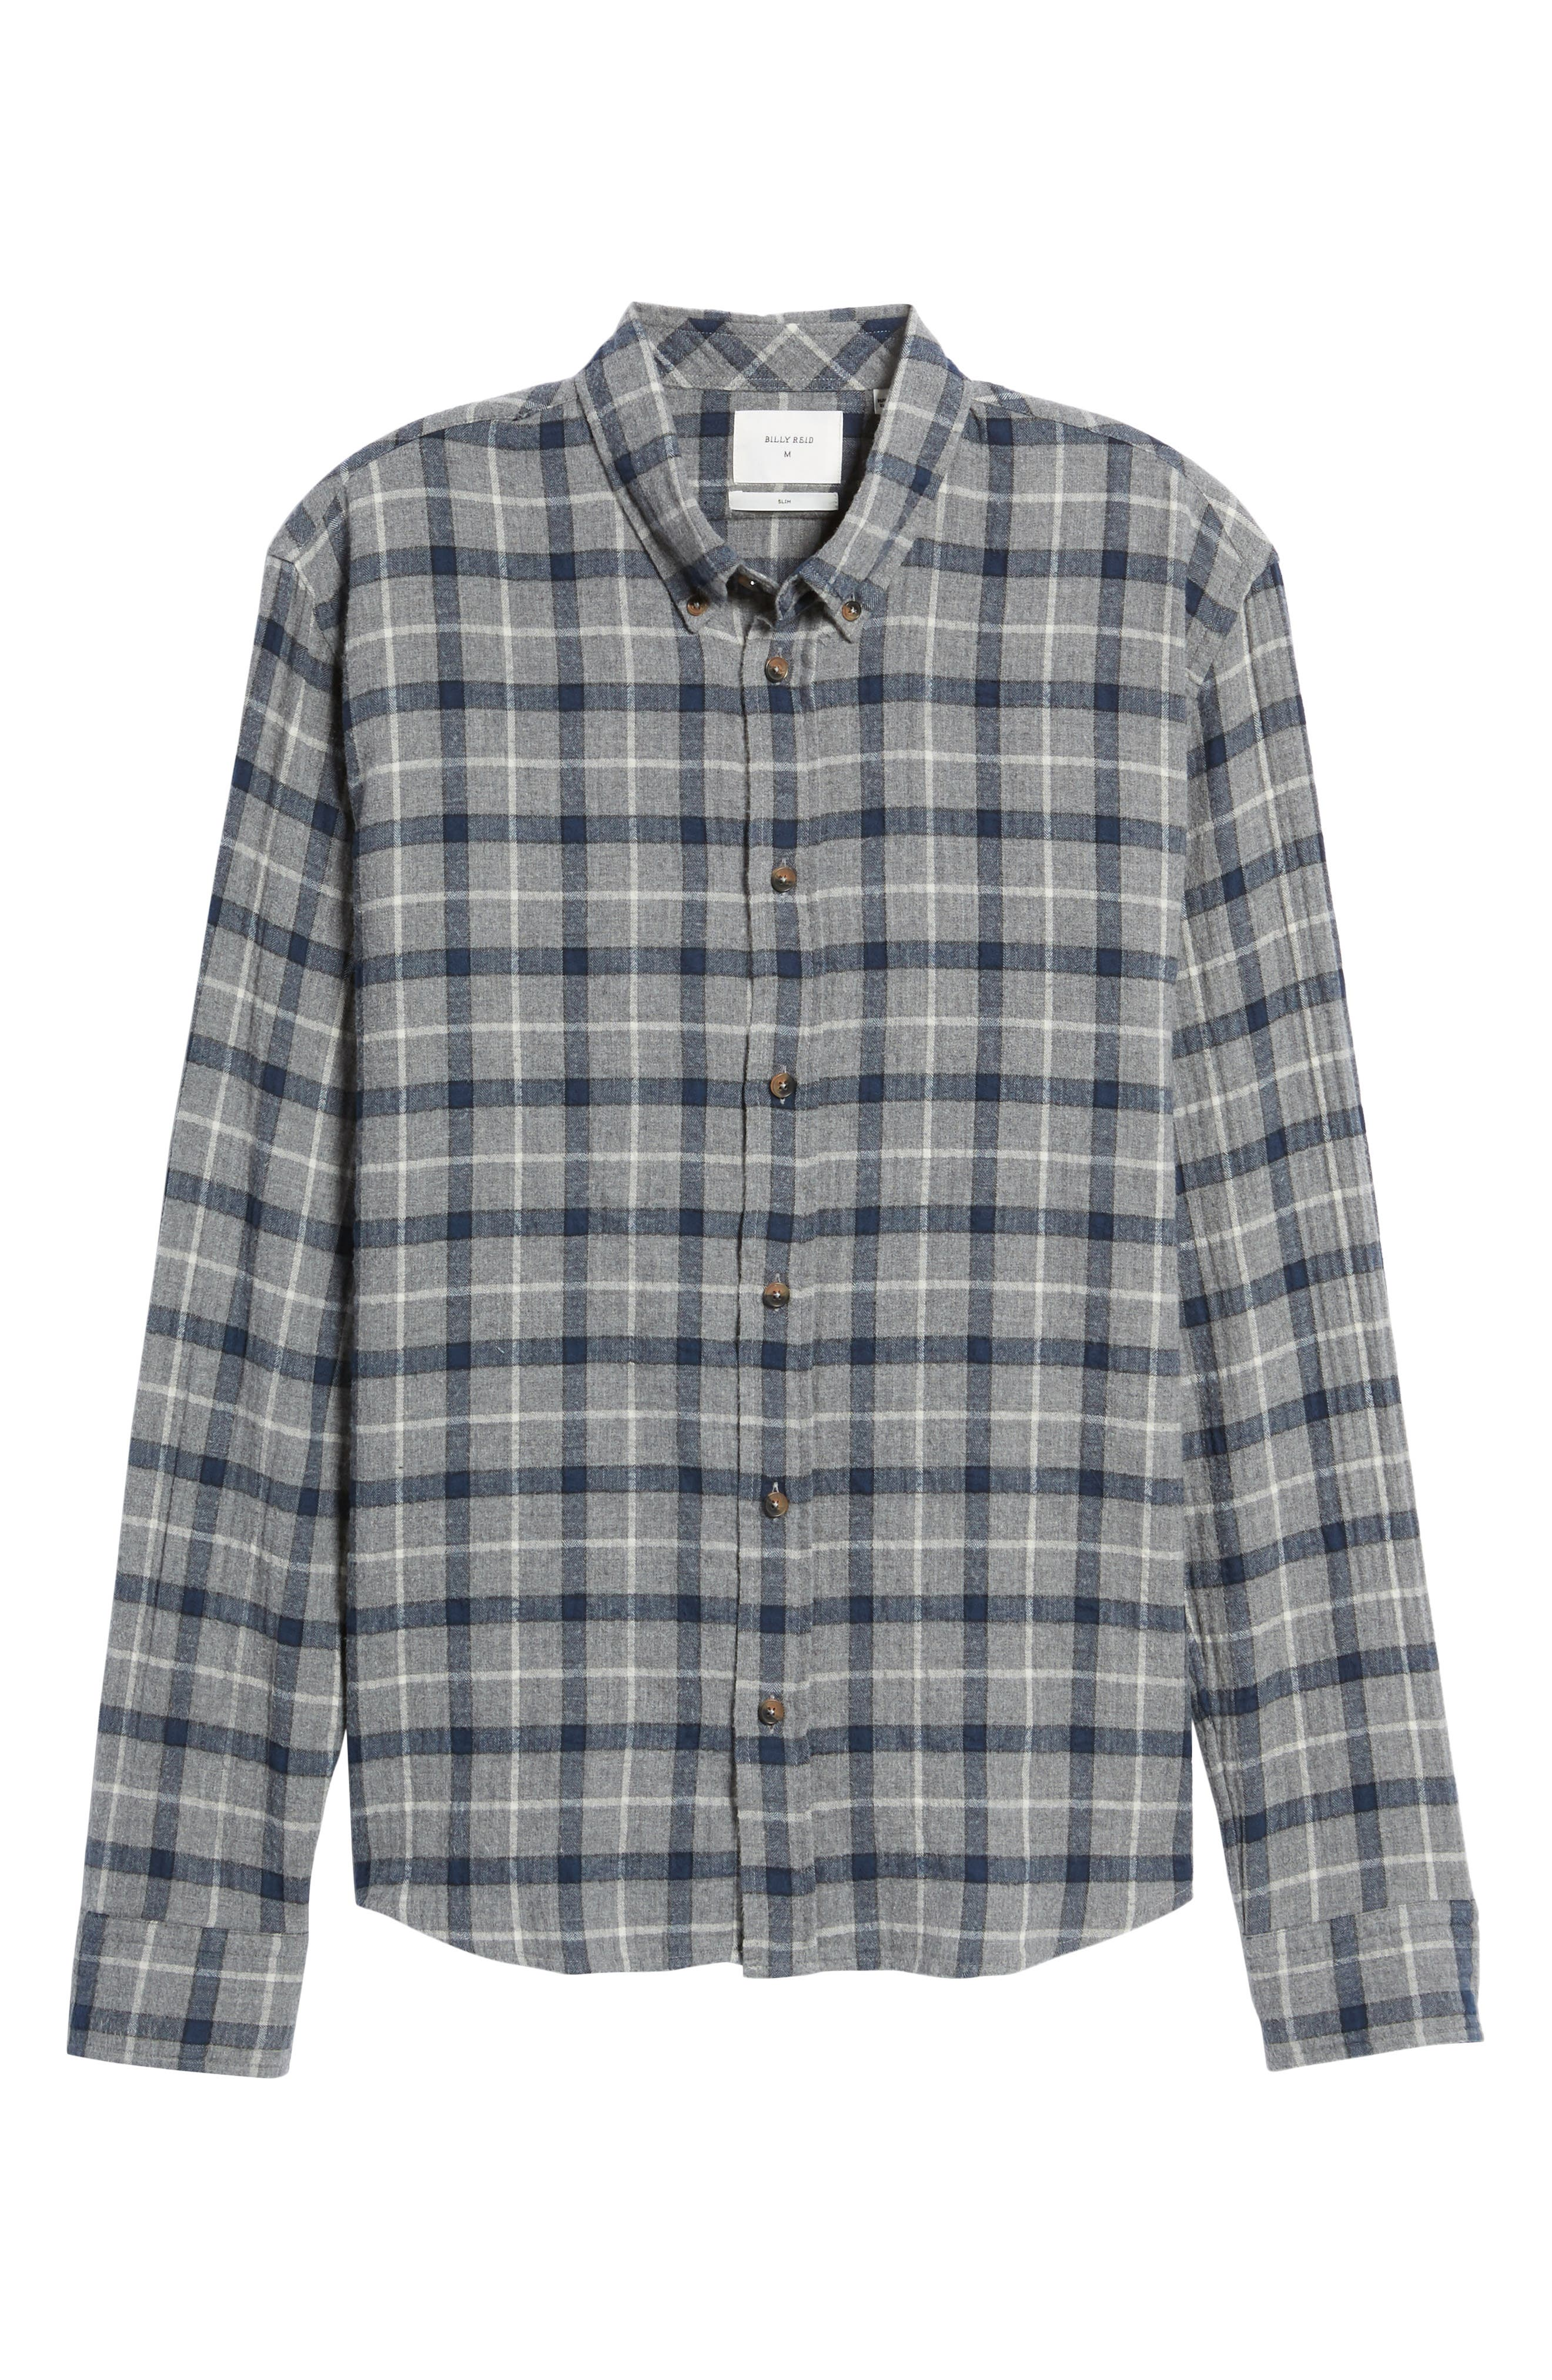 Murphy Slim Fit Plaid Sport Shirt,                             Alternate thumbnail 6, color,                             Grey/ Navy